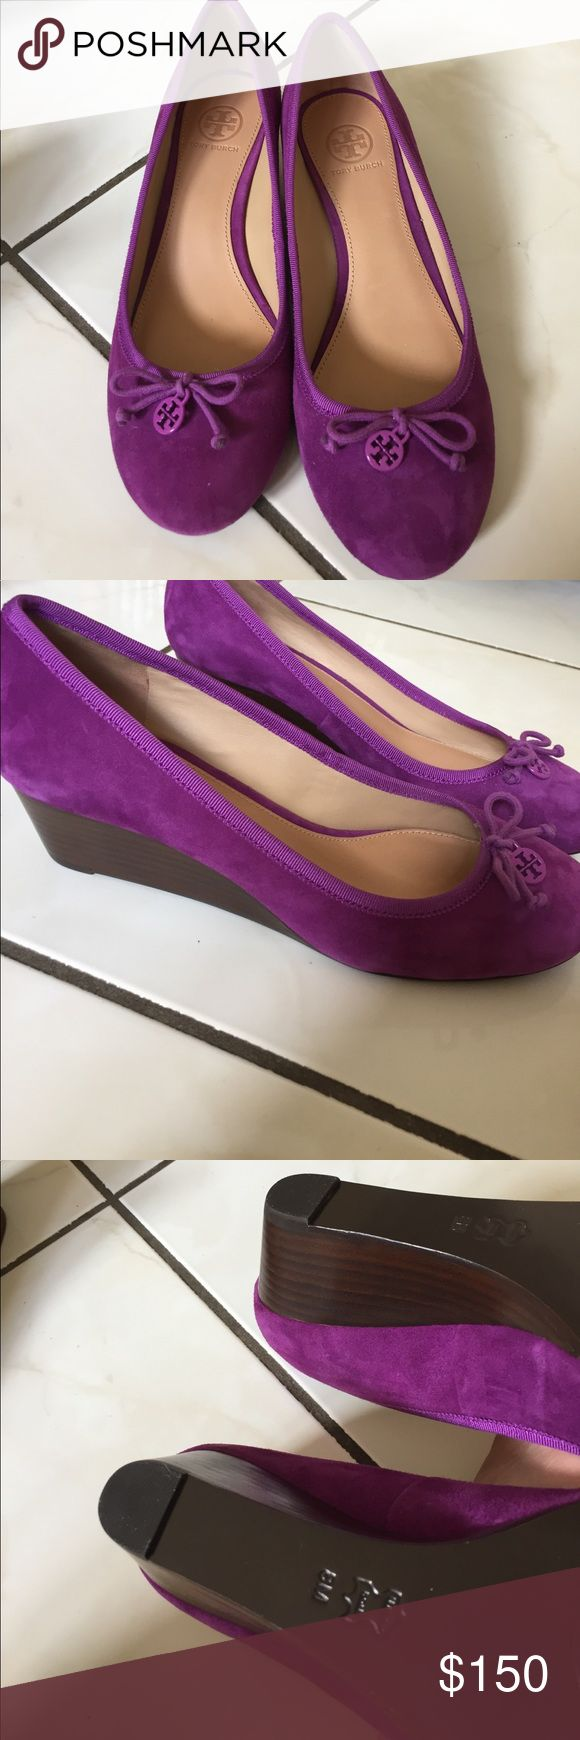 New Tory burch purple wedges Super cute and needs a new home! New shoes! Tory Burch Shoes